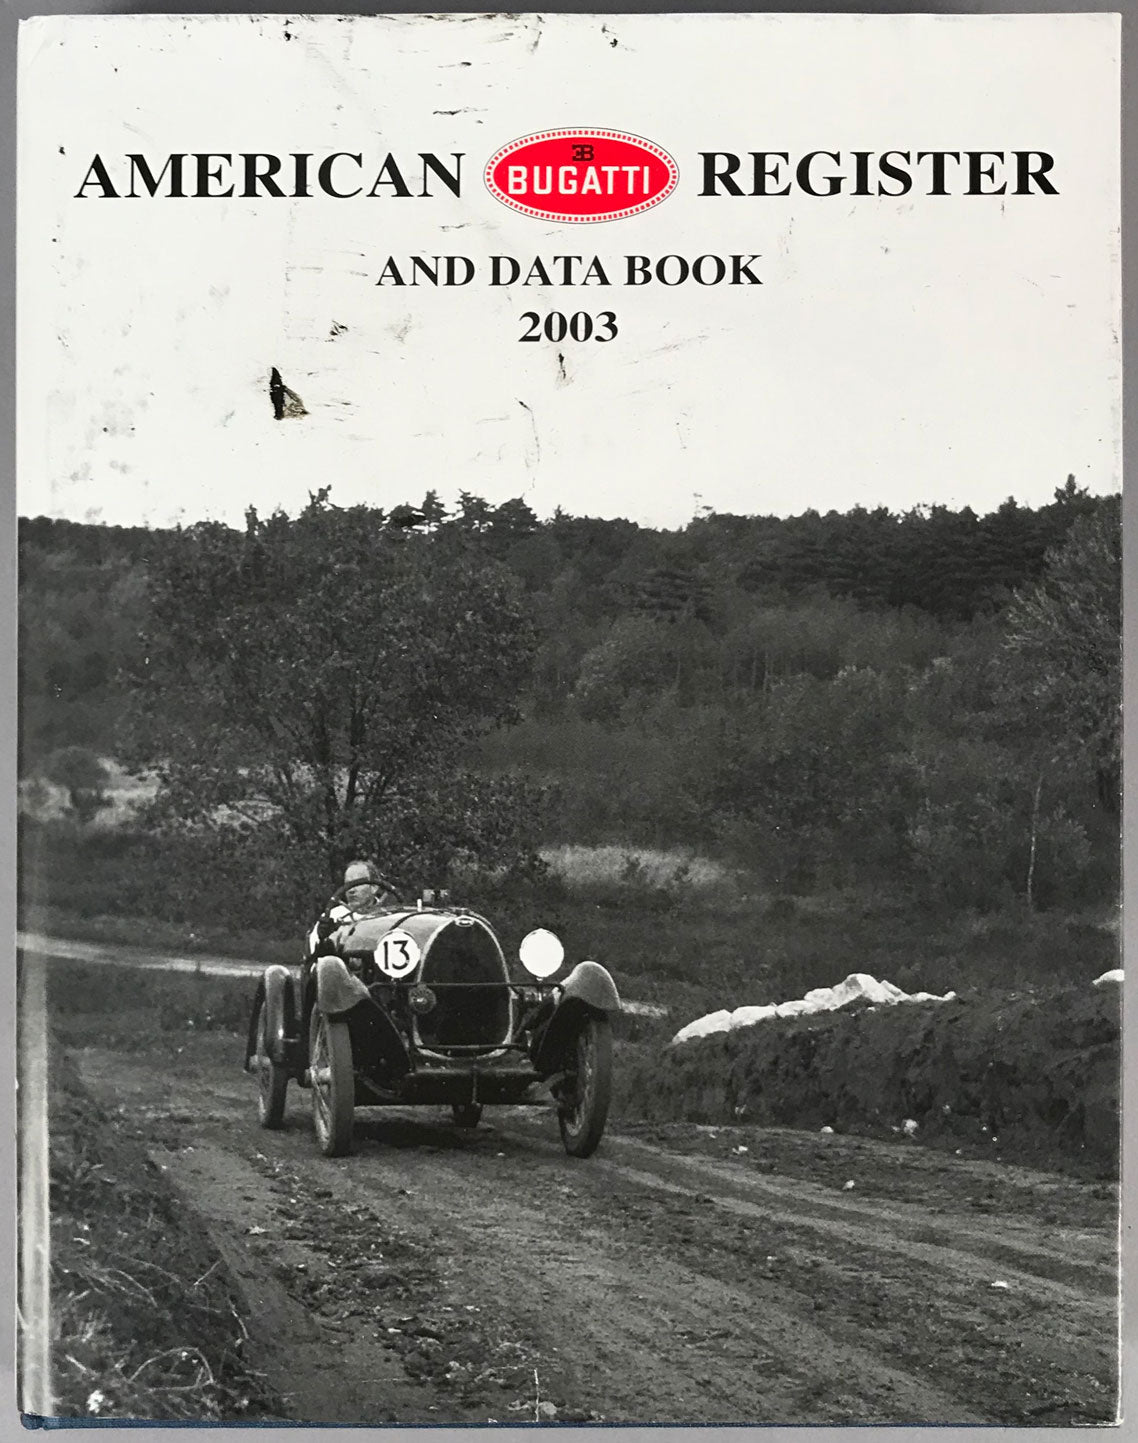 American Bugatti Register and data book, 2003